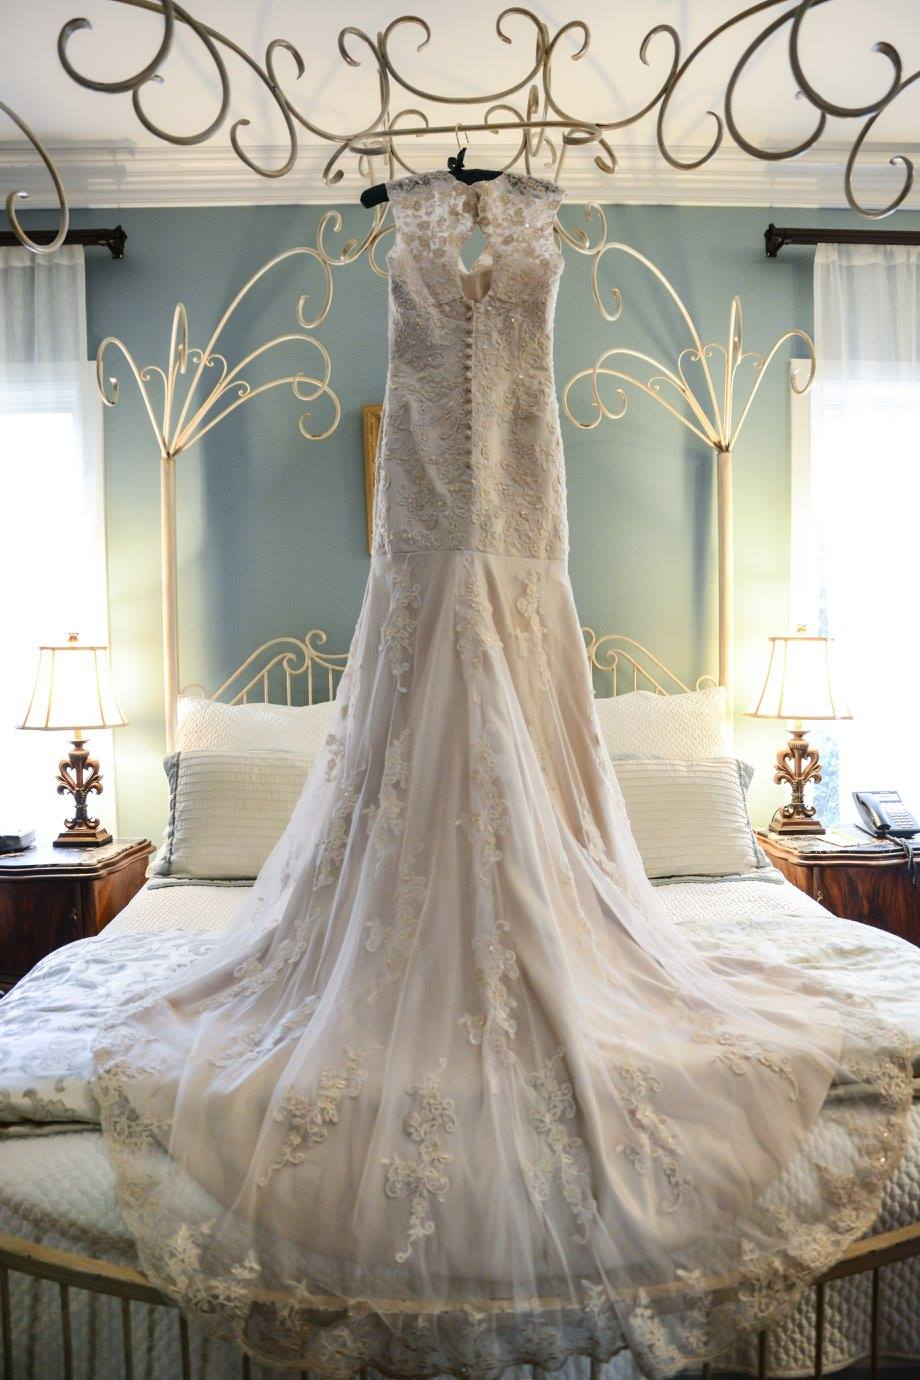 Wildwood Inn Bridal Open House Denton Texas Wedding Venue